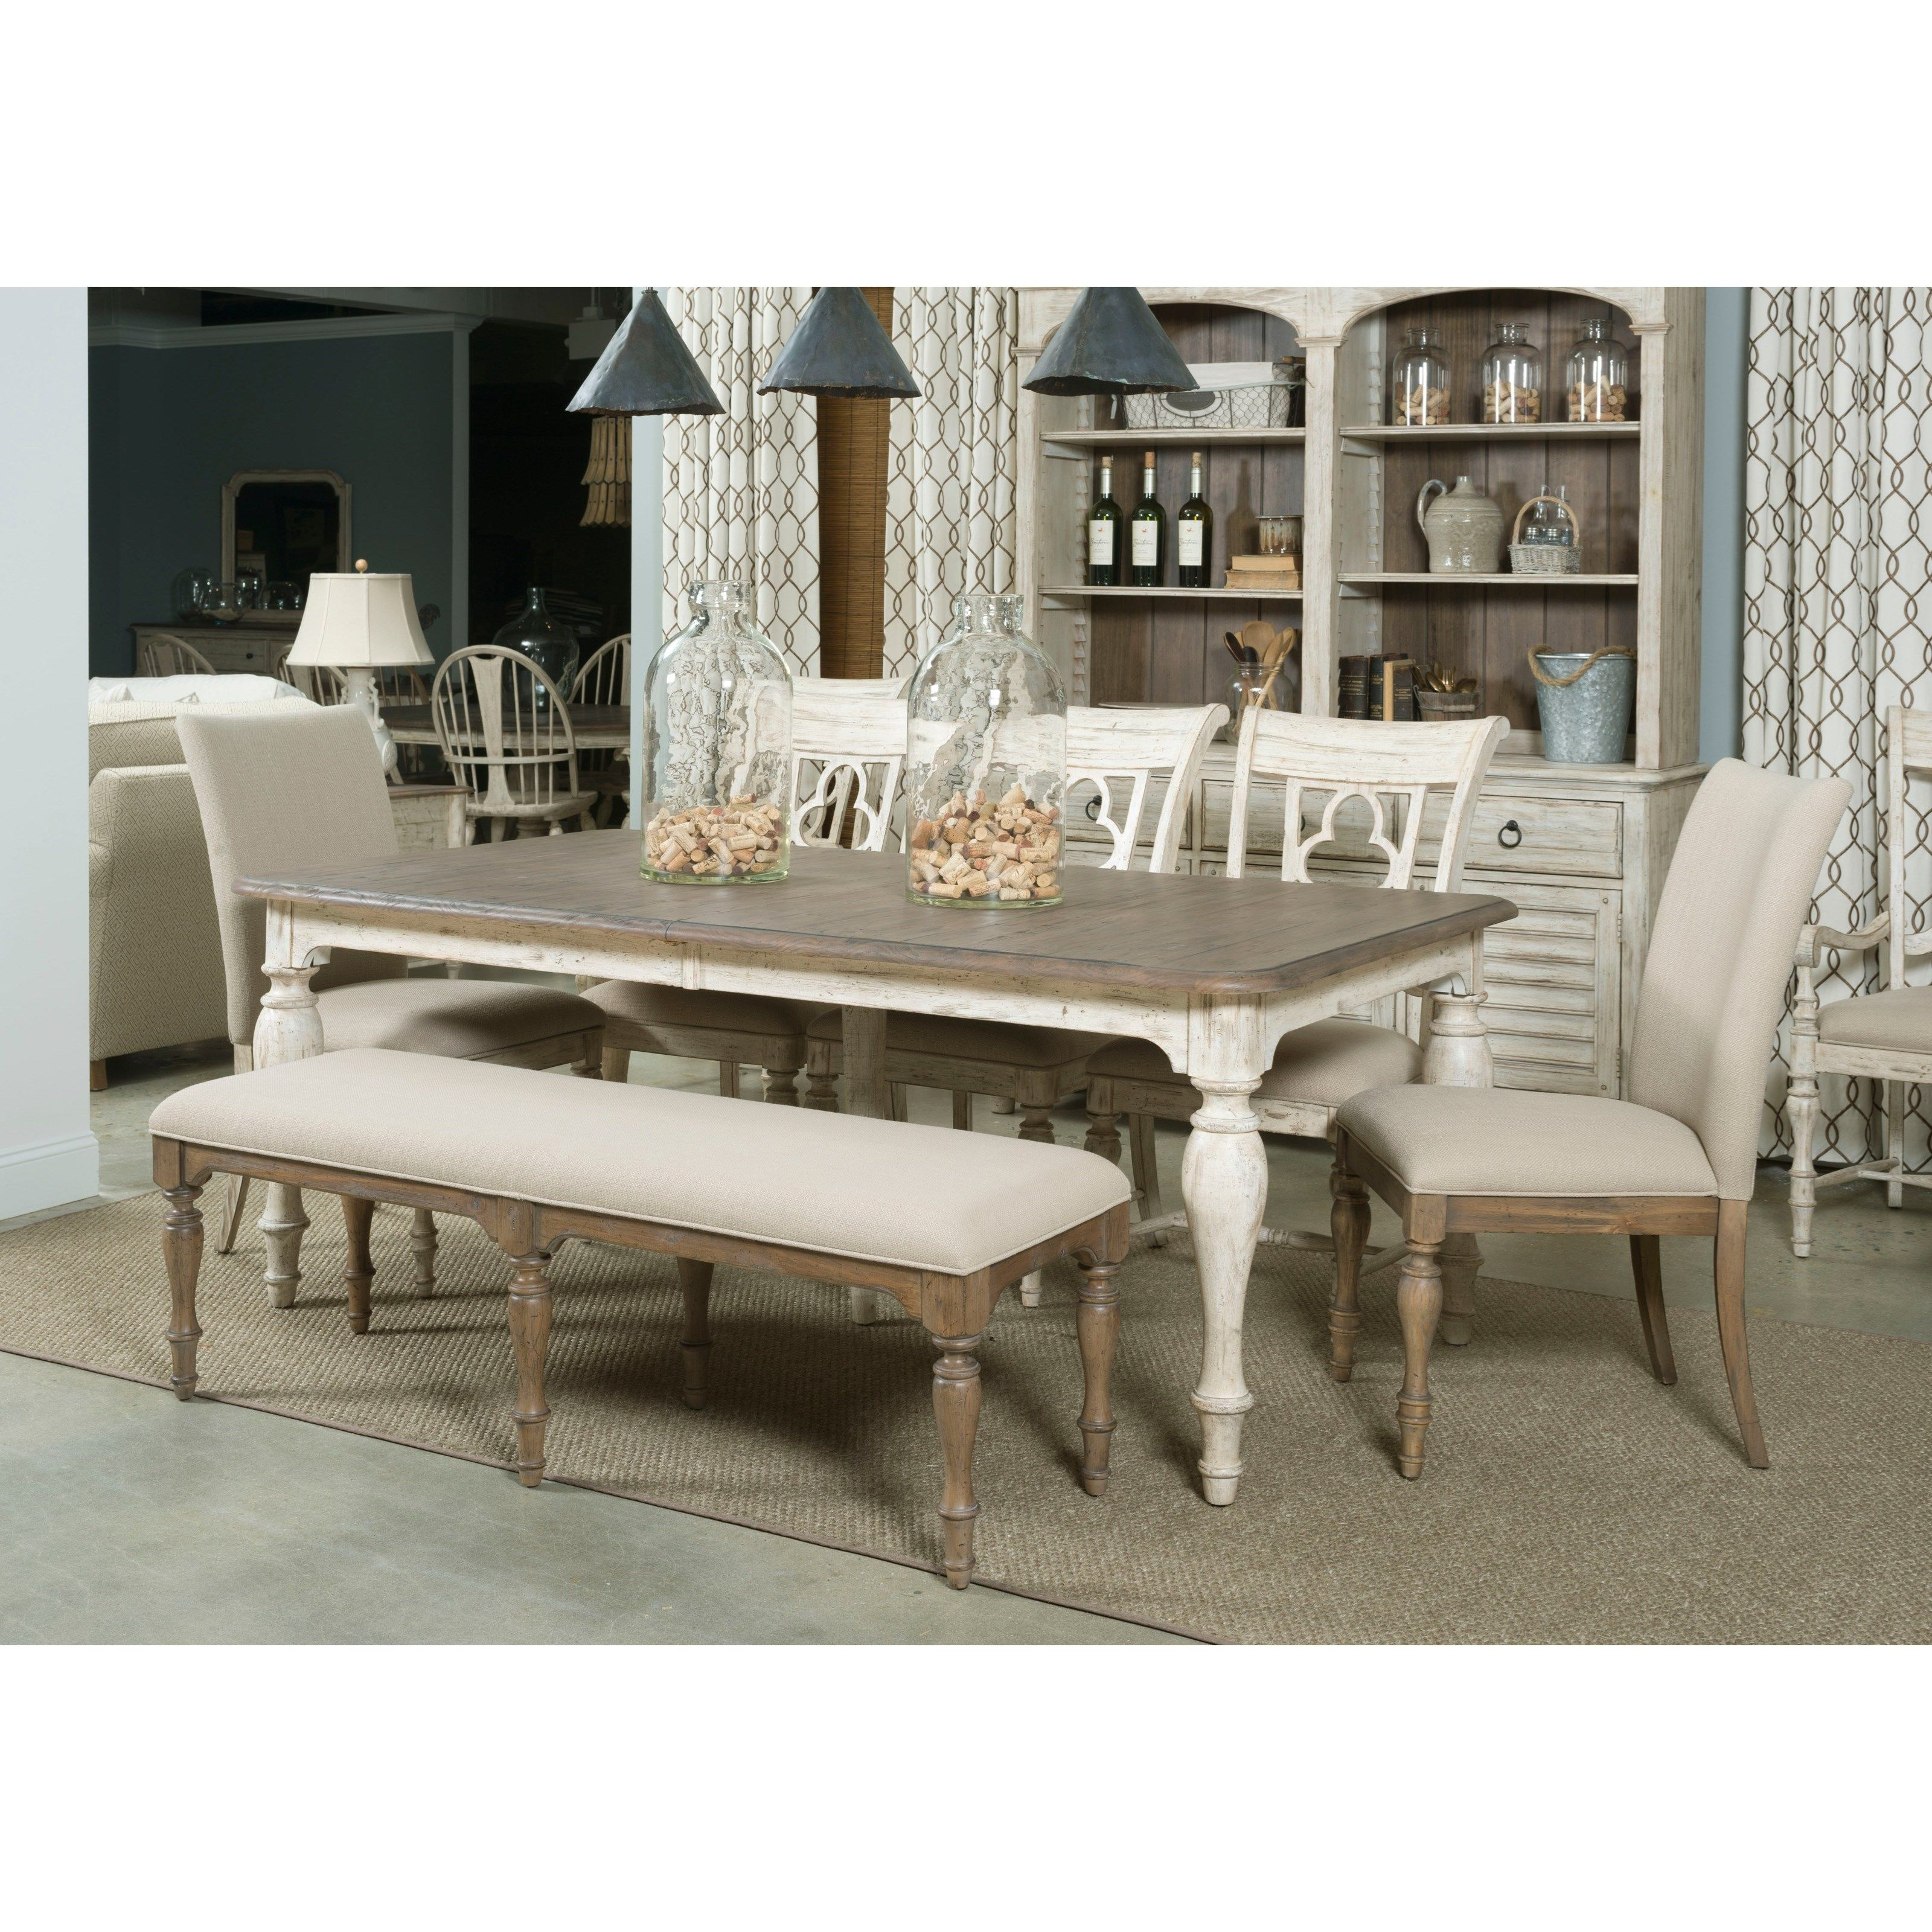 Weatherford Casual Dining Room Group By Kincaid Furniture At Hudson S Furniture Casual Dining Rooms Furniture Interior Design Dining Room